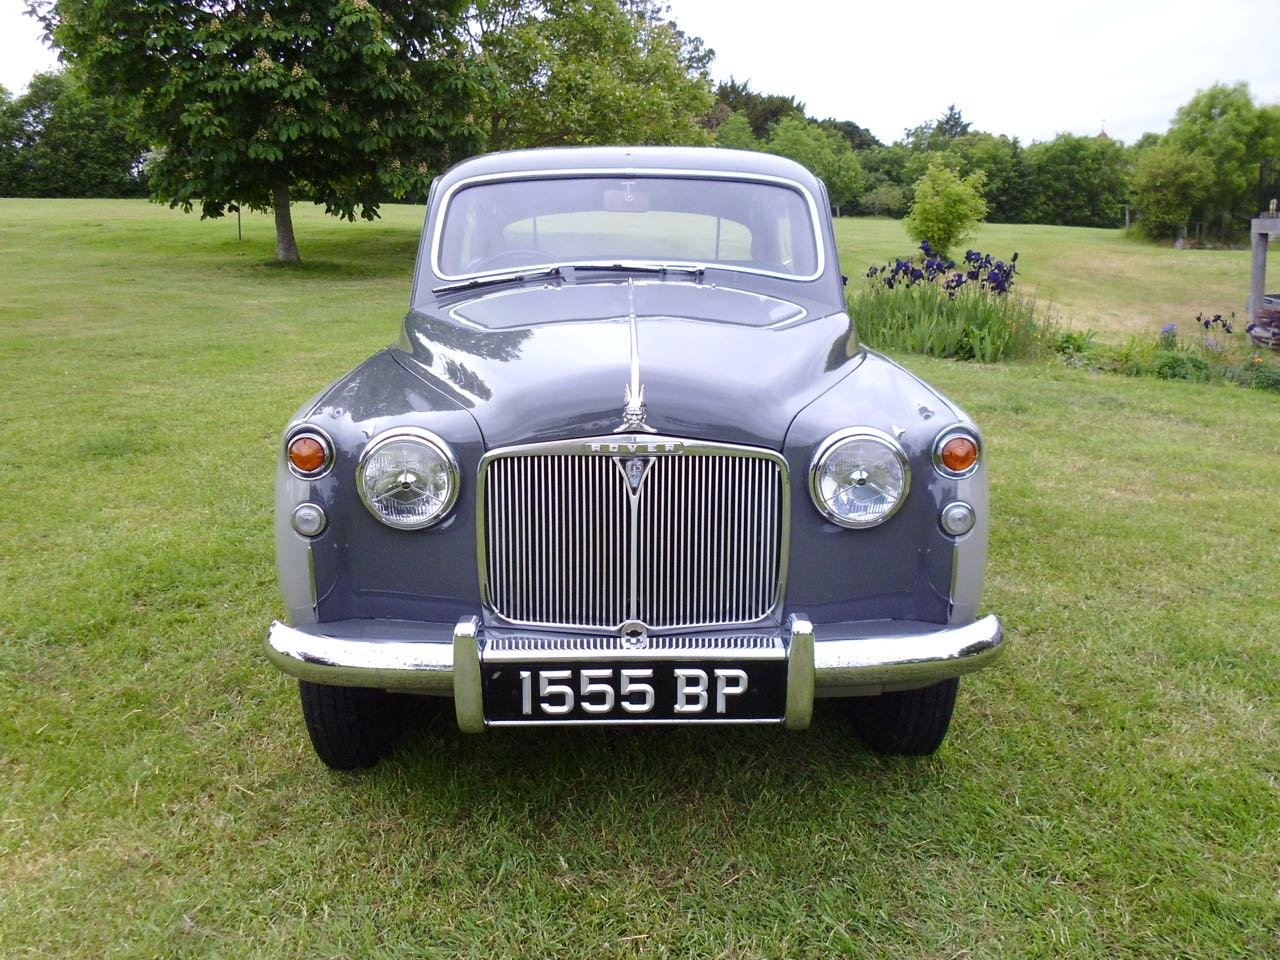 1958 Rover P4 75 six cylinder saloon For Sale (picture 2 of 6)